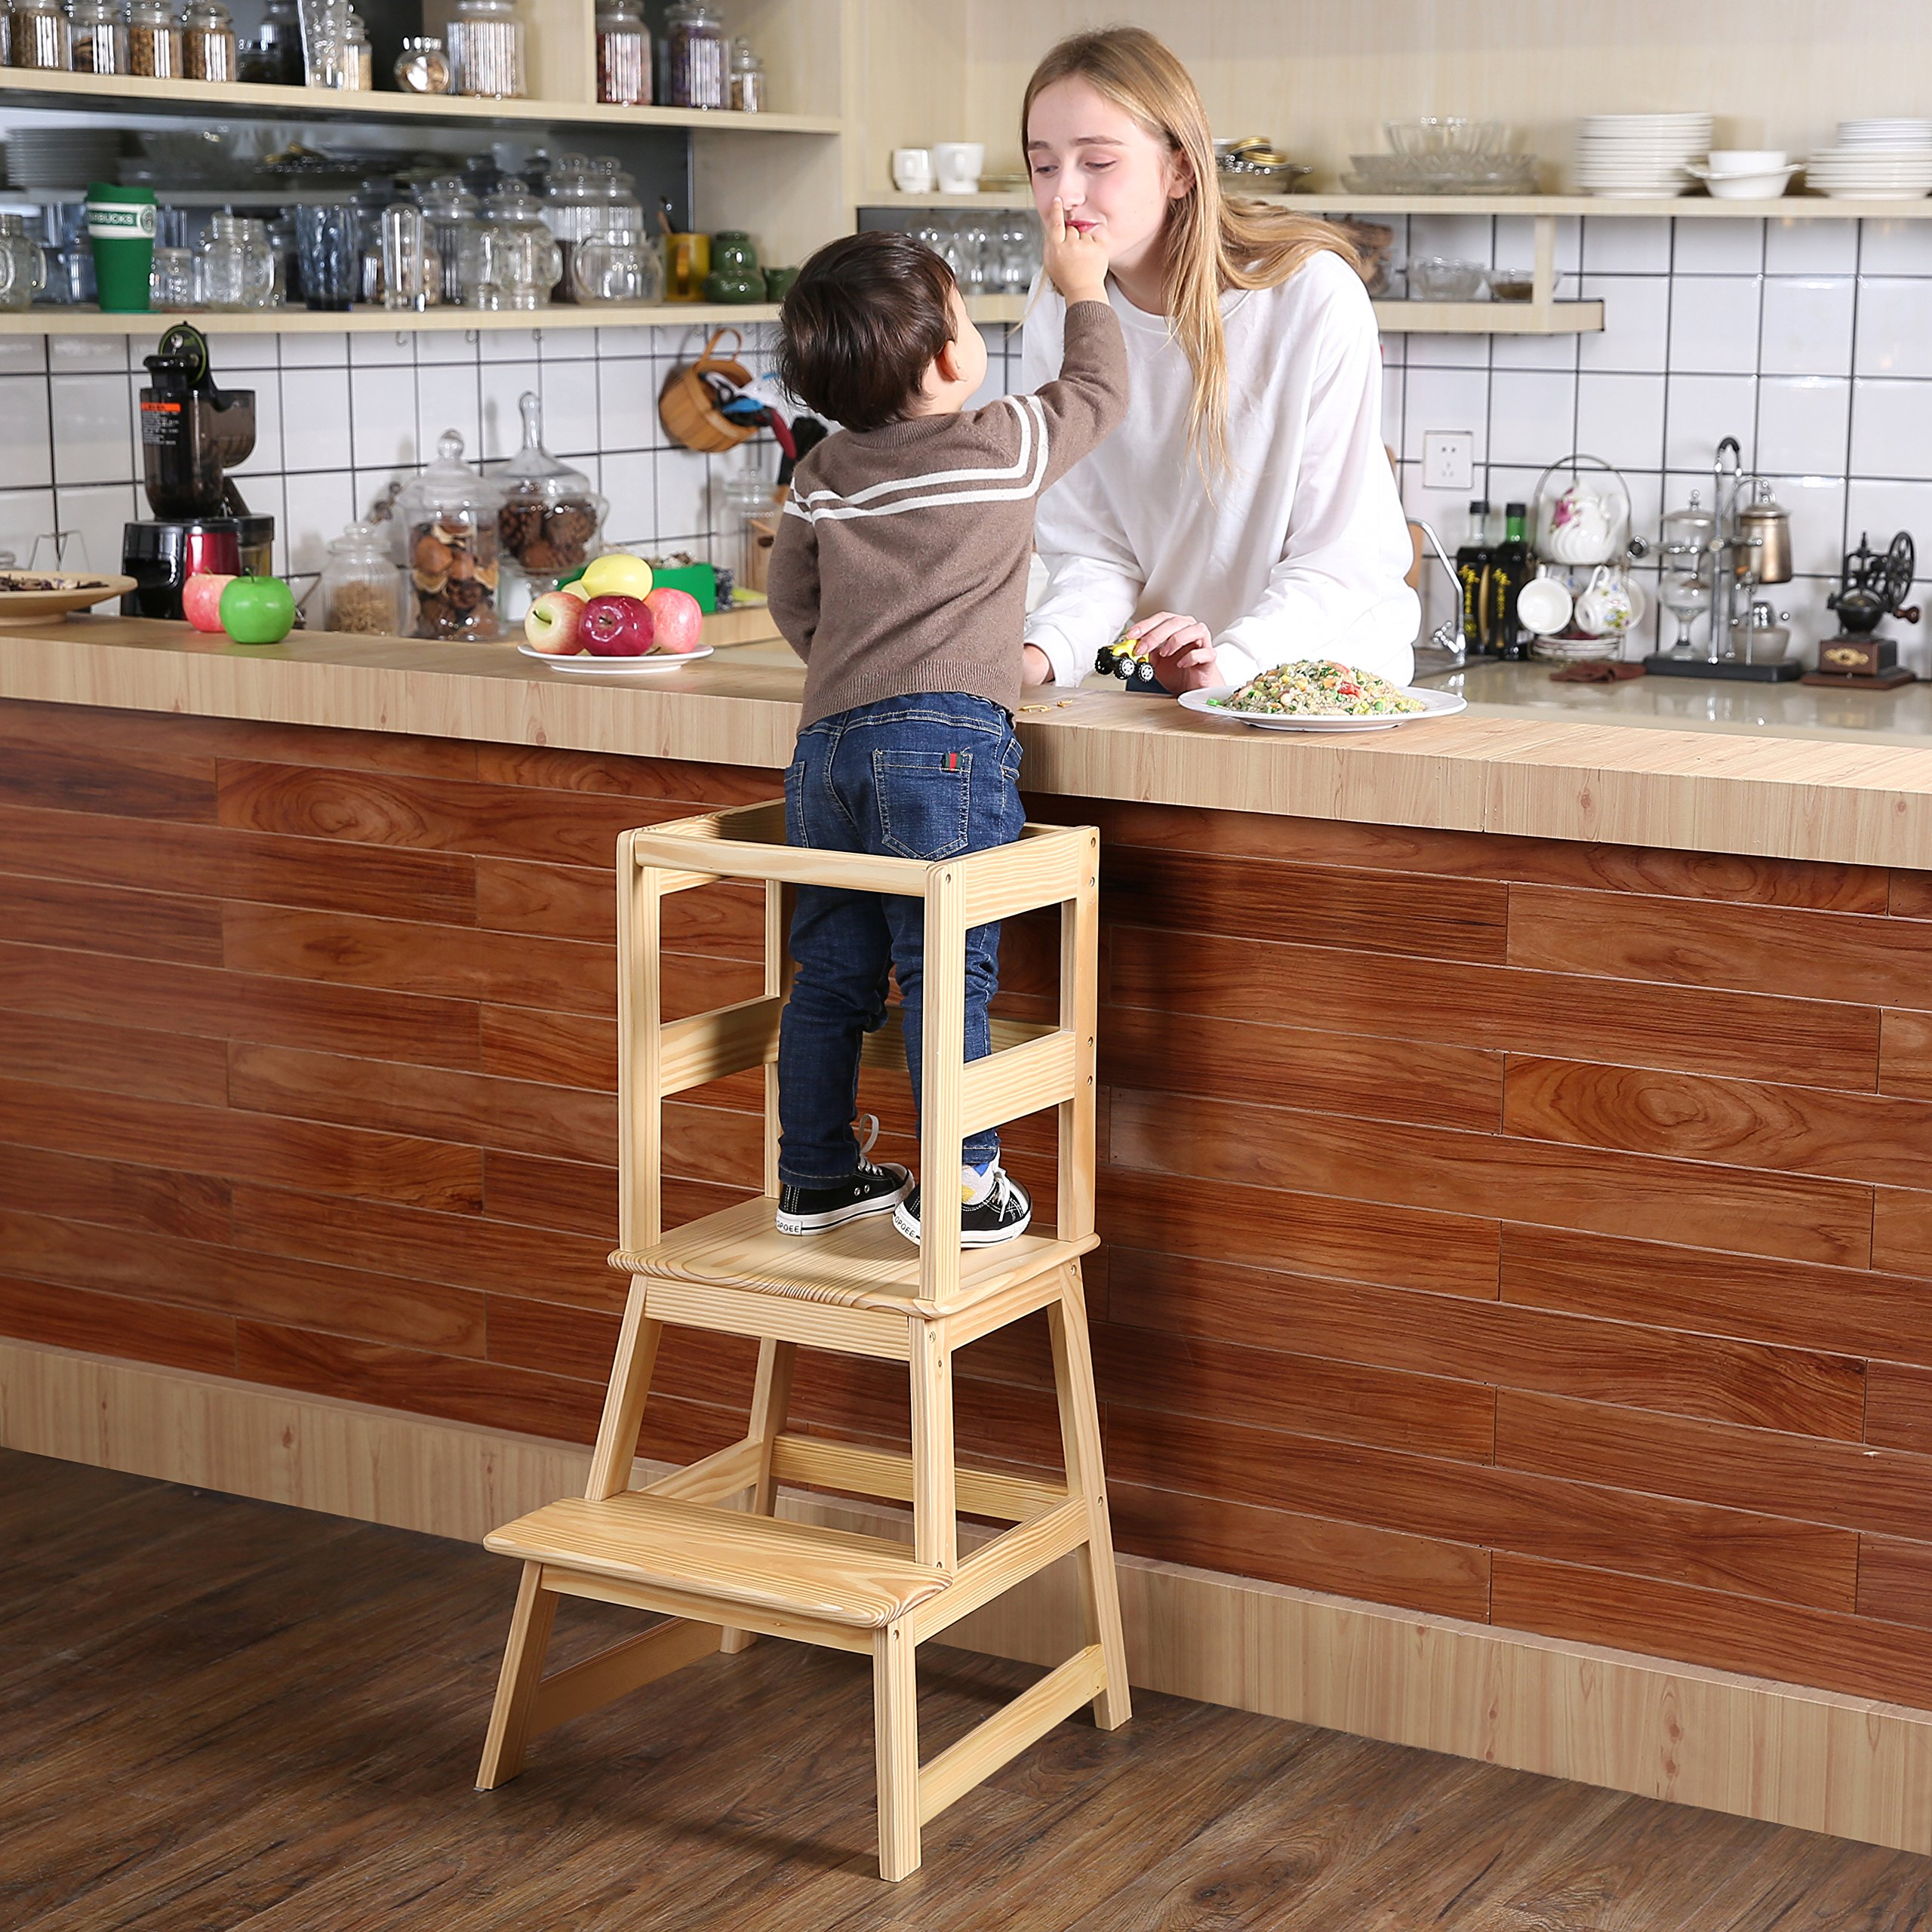 SDADI Kids Step Stool Kitchen Learning Stool with Safety Rail CPSC Certified - for Toddlers 18 Months and Older,Burlywood